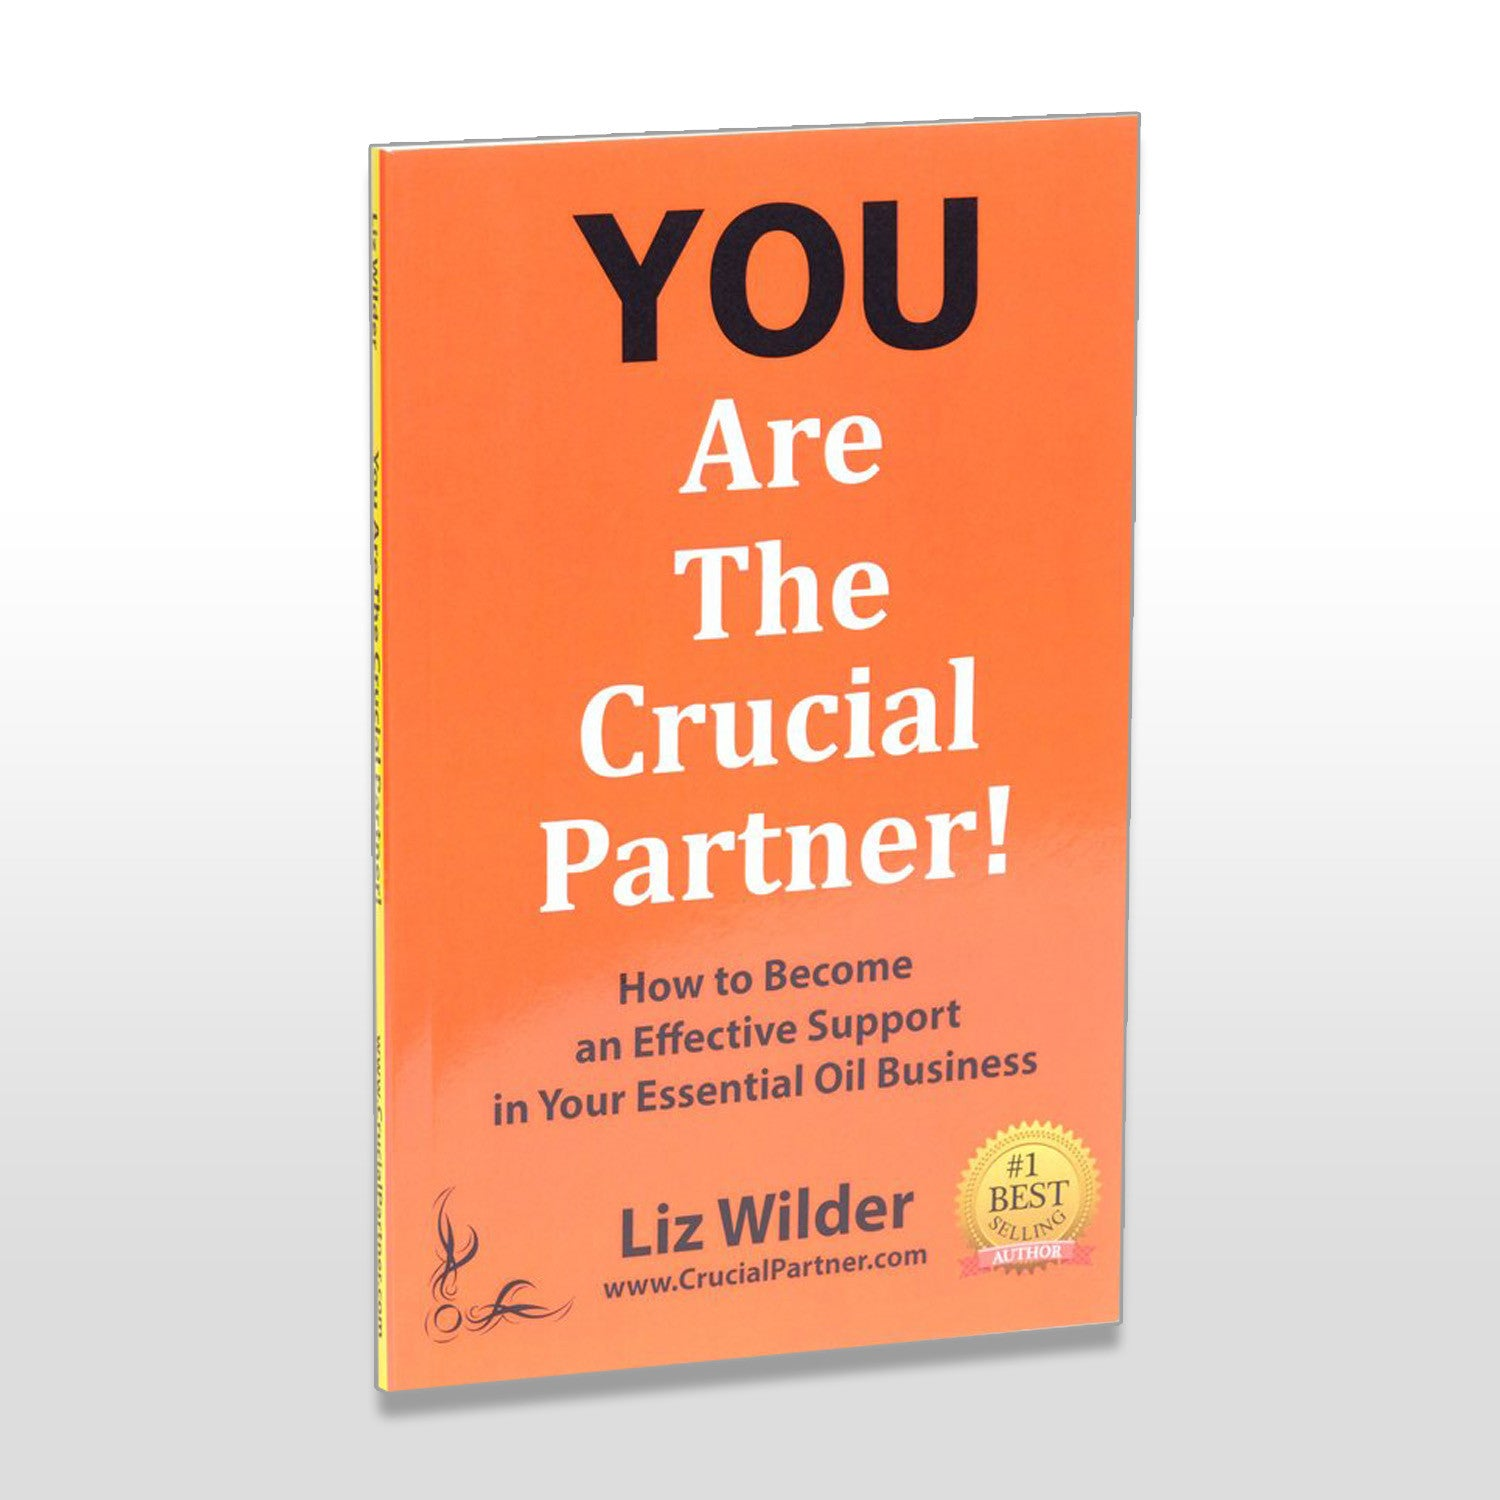 YOU Are The Crucial Partner